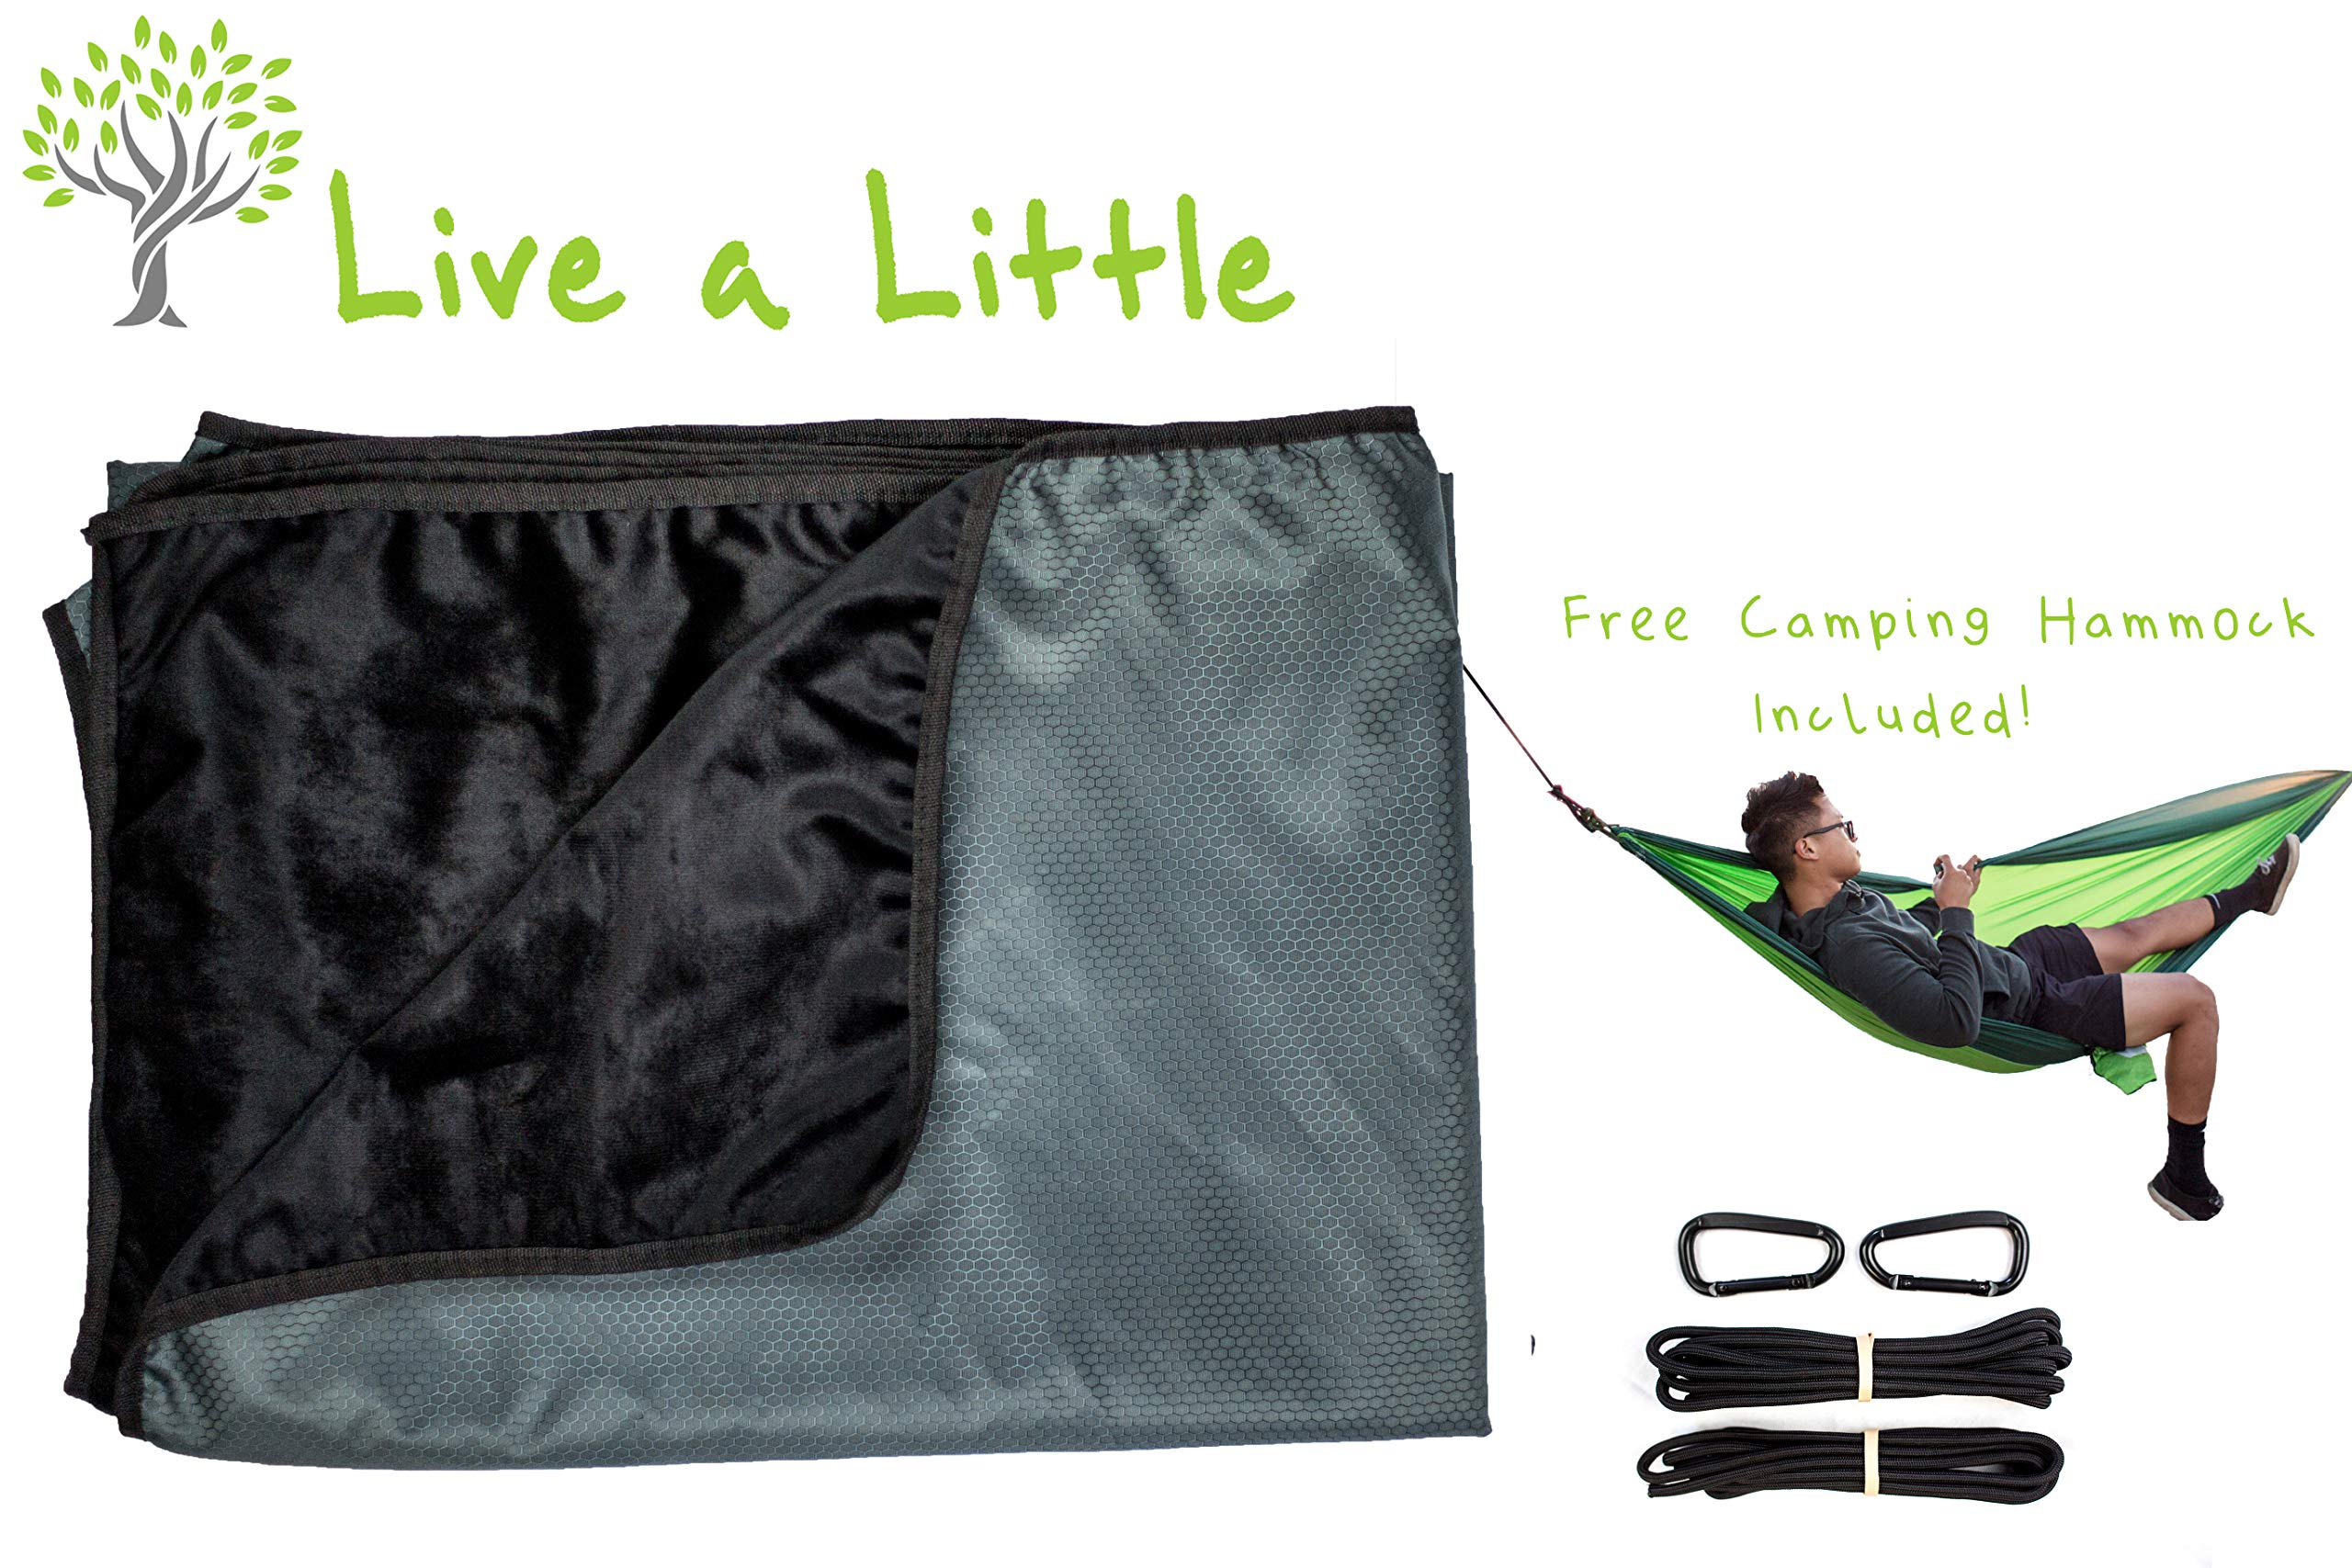 Live a Little Weatherproof Outdoor Stadium Blanket (Free Camping Hammock Included) - Perfect for Camping, Picnic, Beach, Dog, Festivals